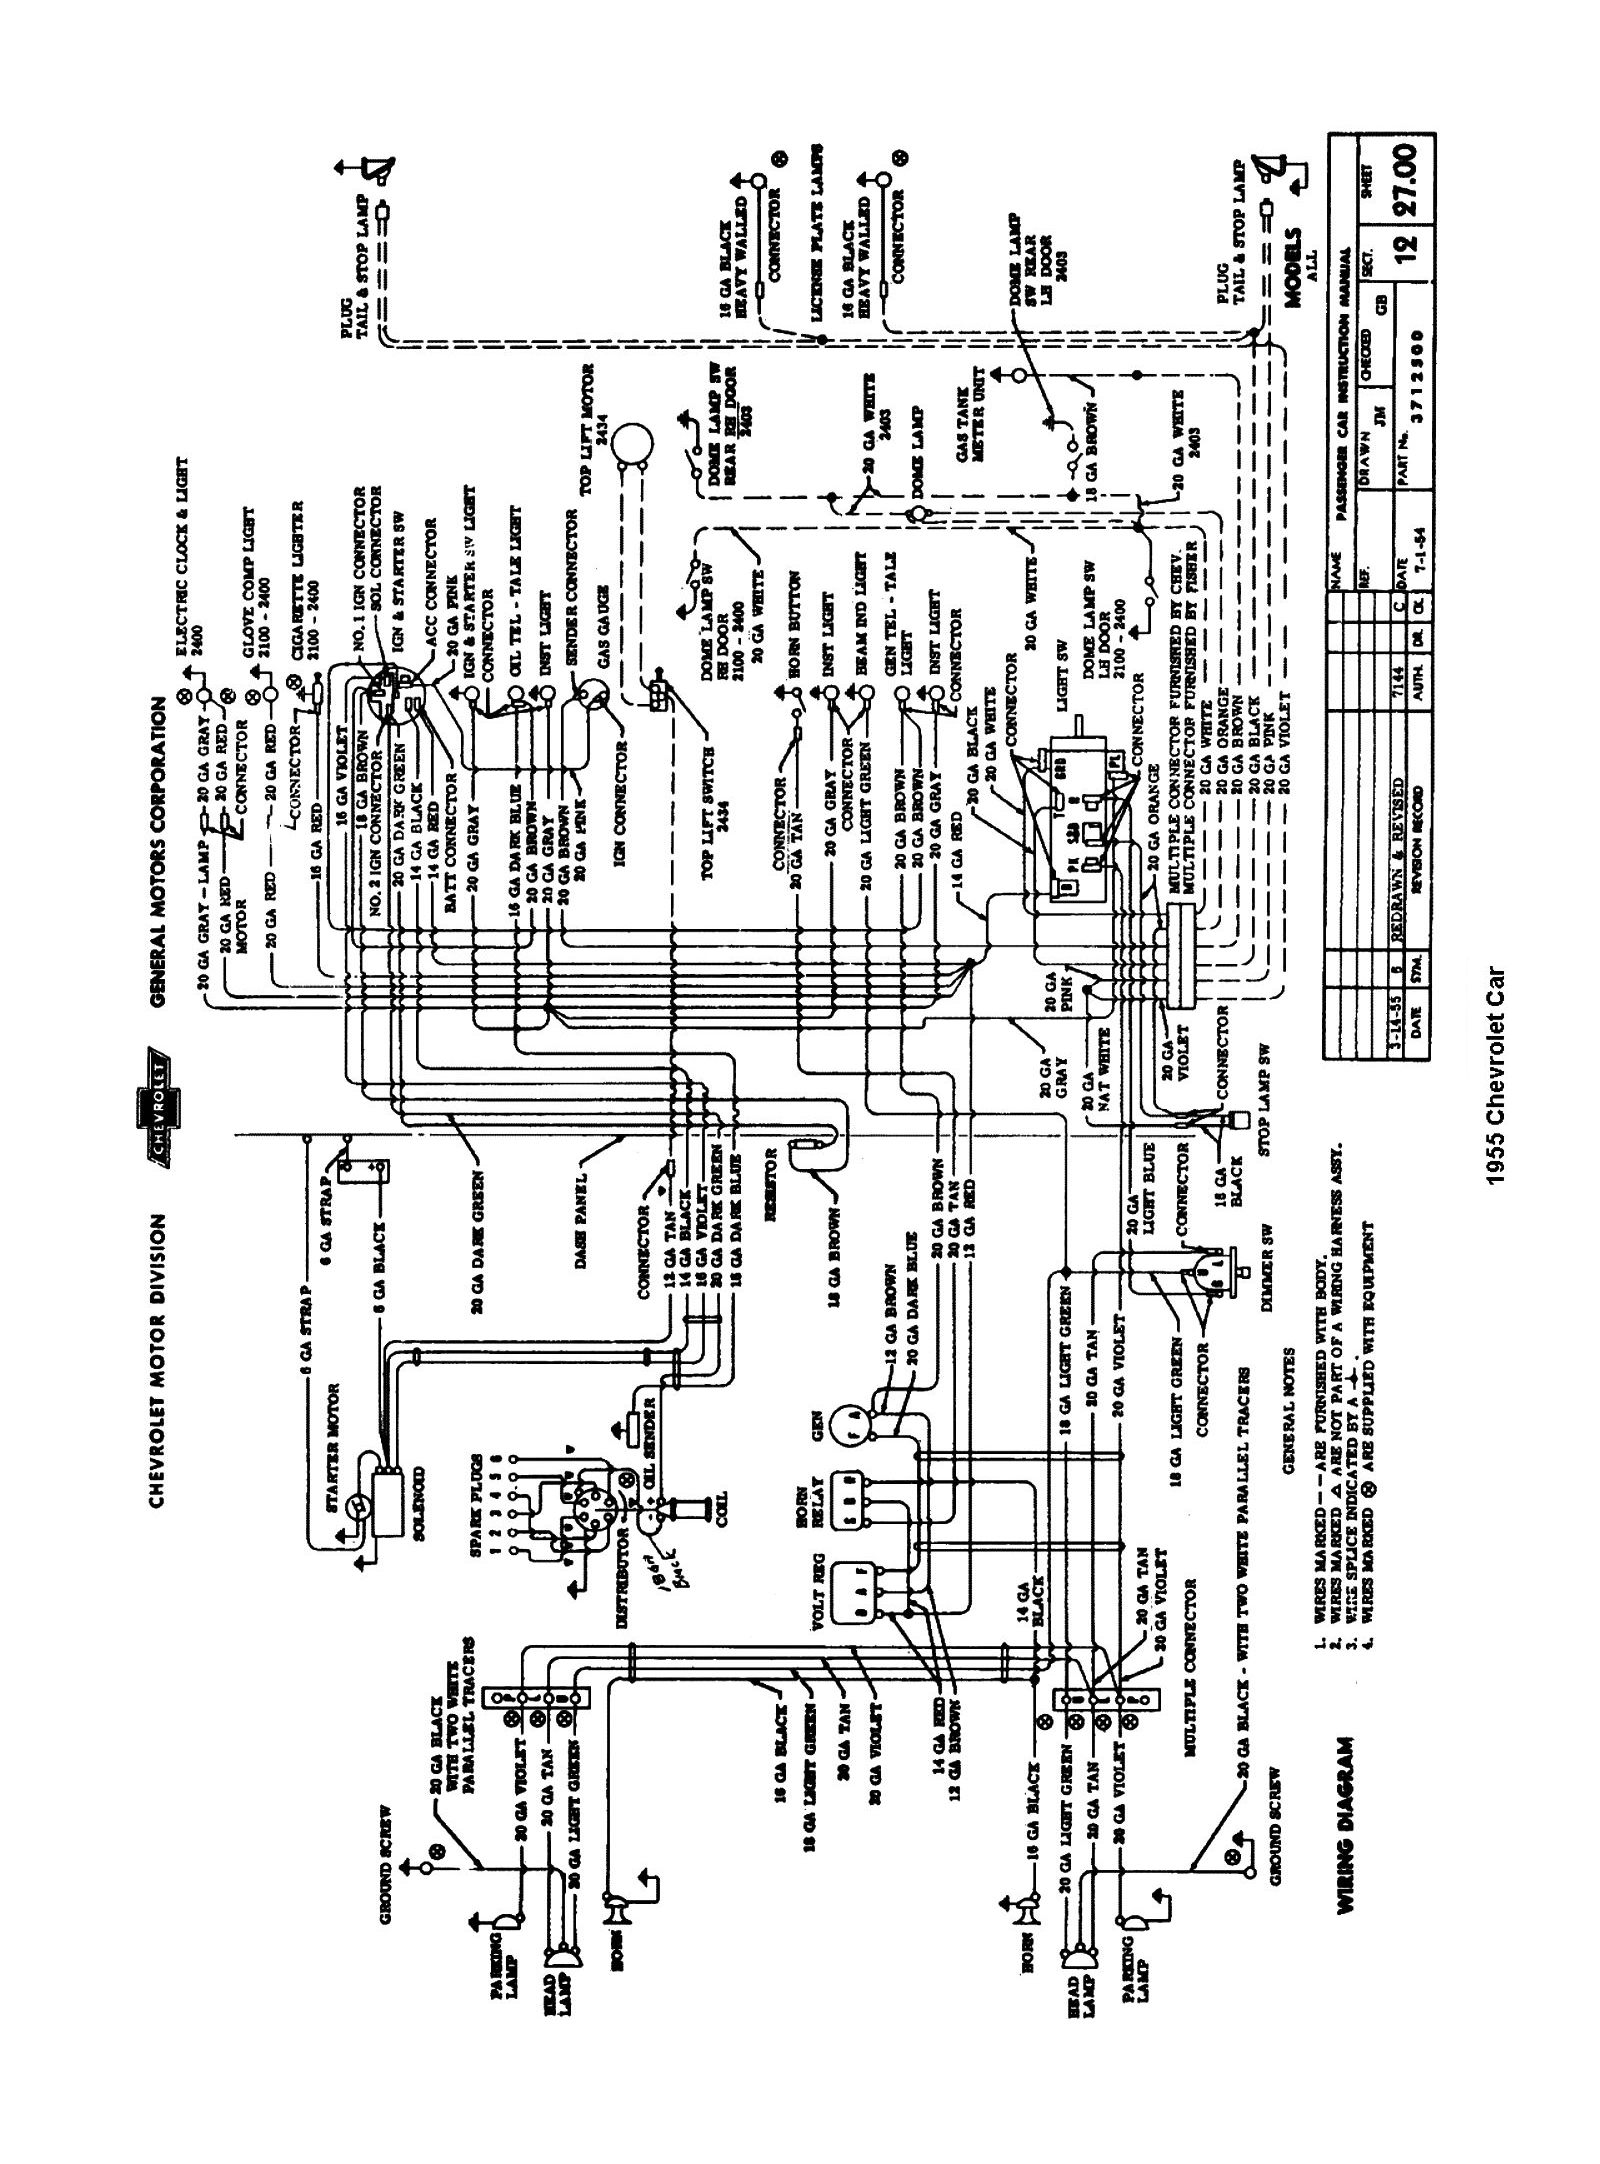 55car1 chevy wiring diagrams Basic Turn Signal Wiring Diagram at crackthecode.co